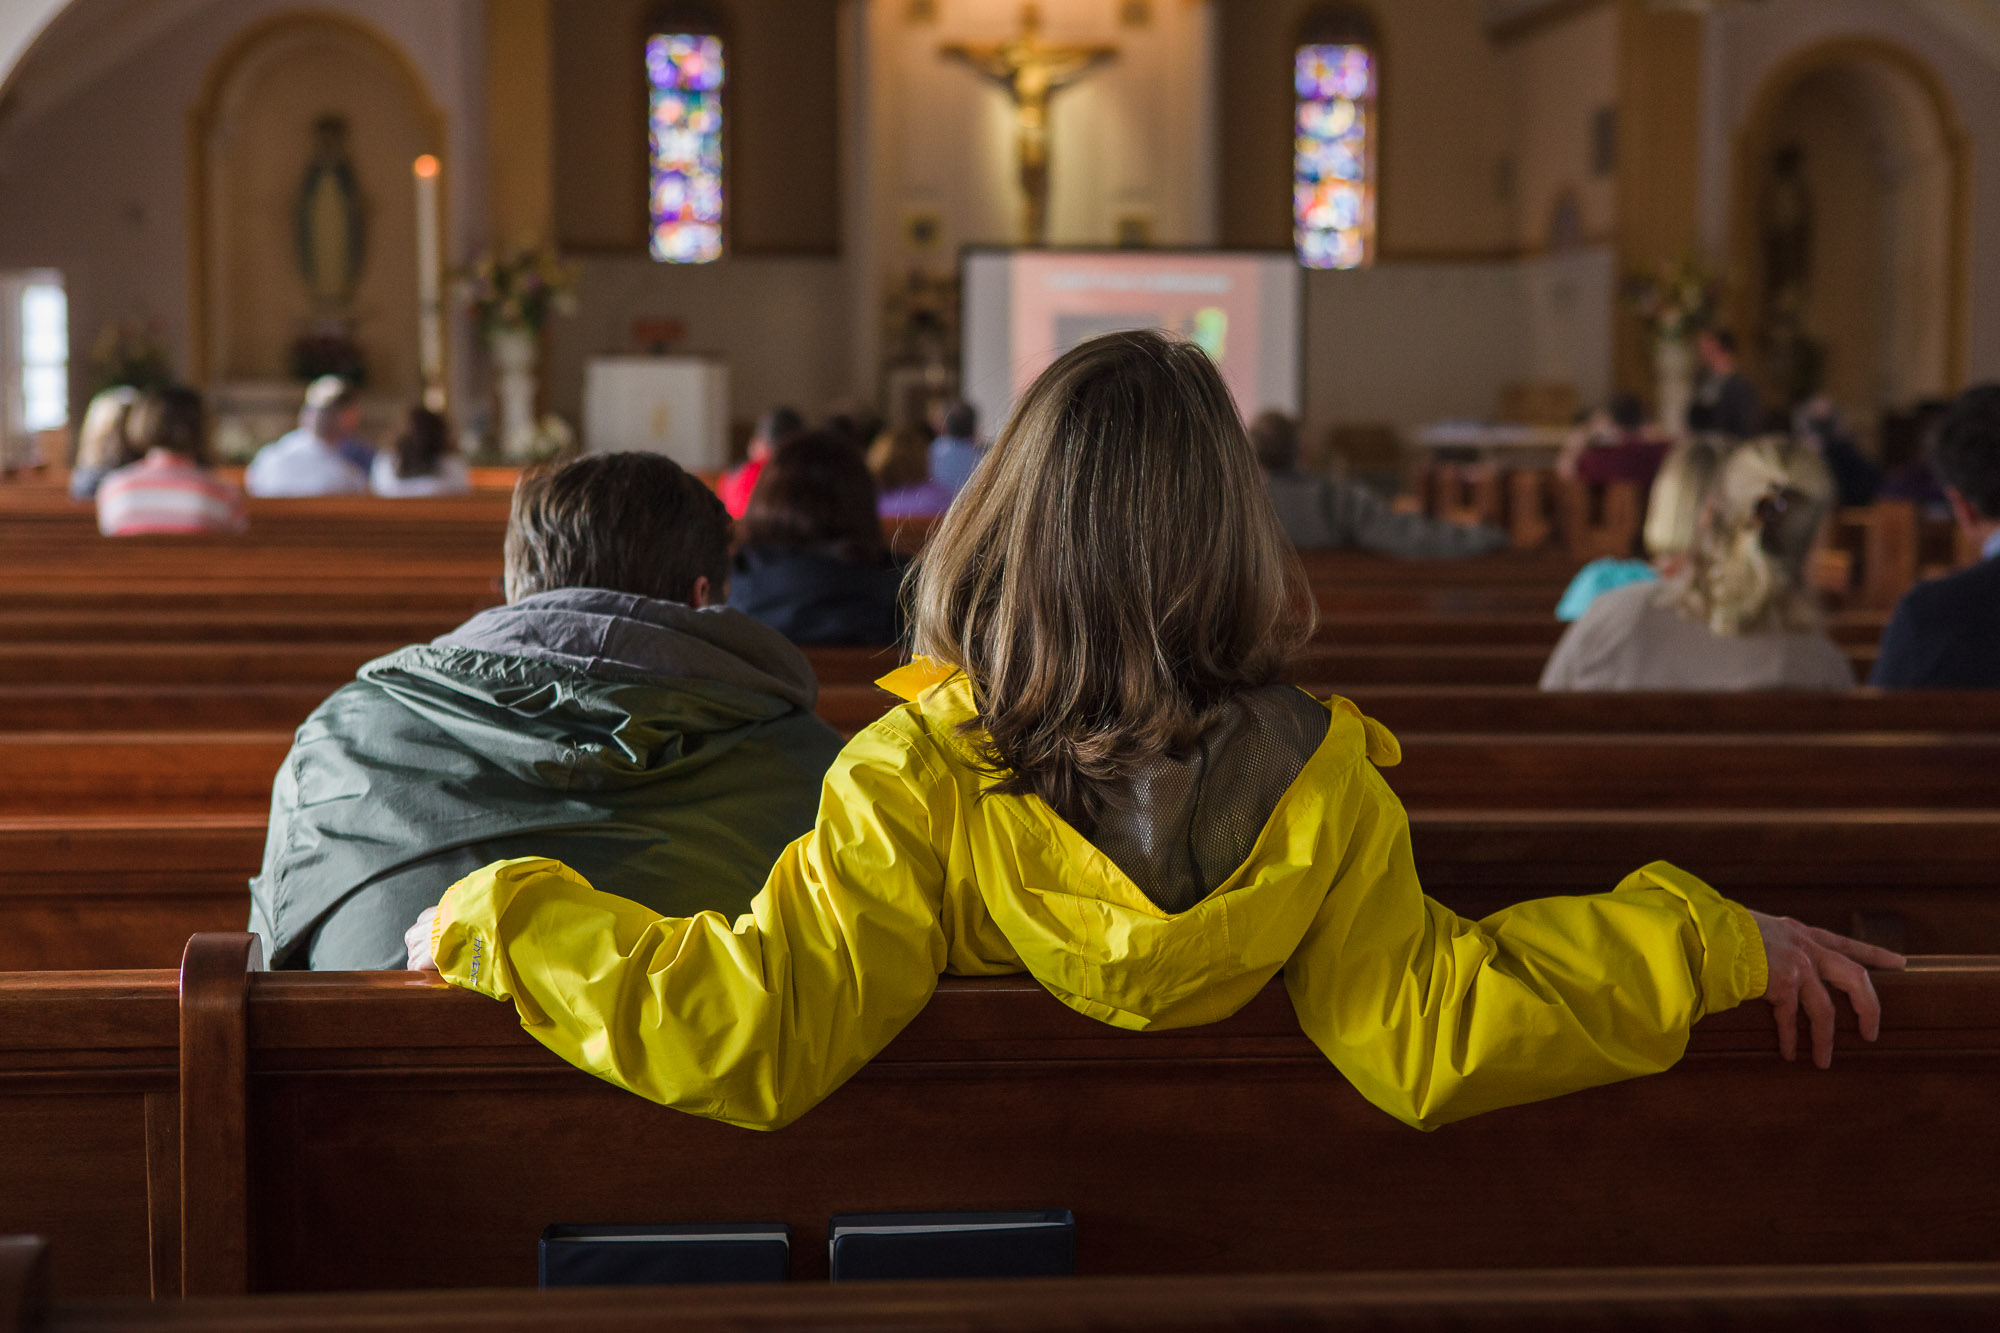 StMichaels_May2014_by_Lomanno_0109.jpg